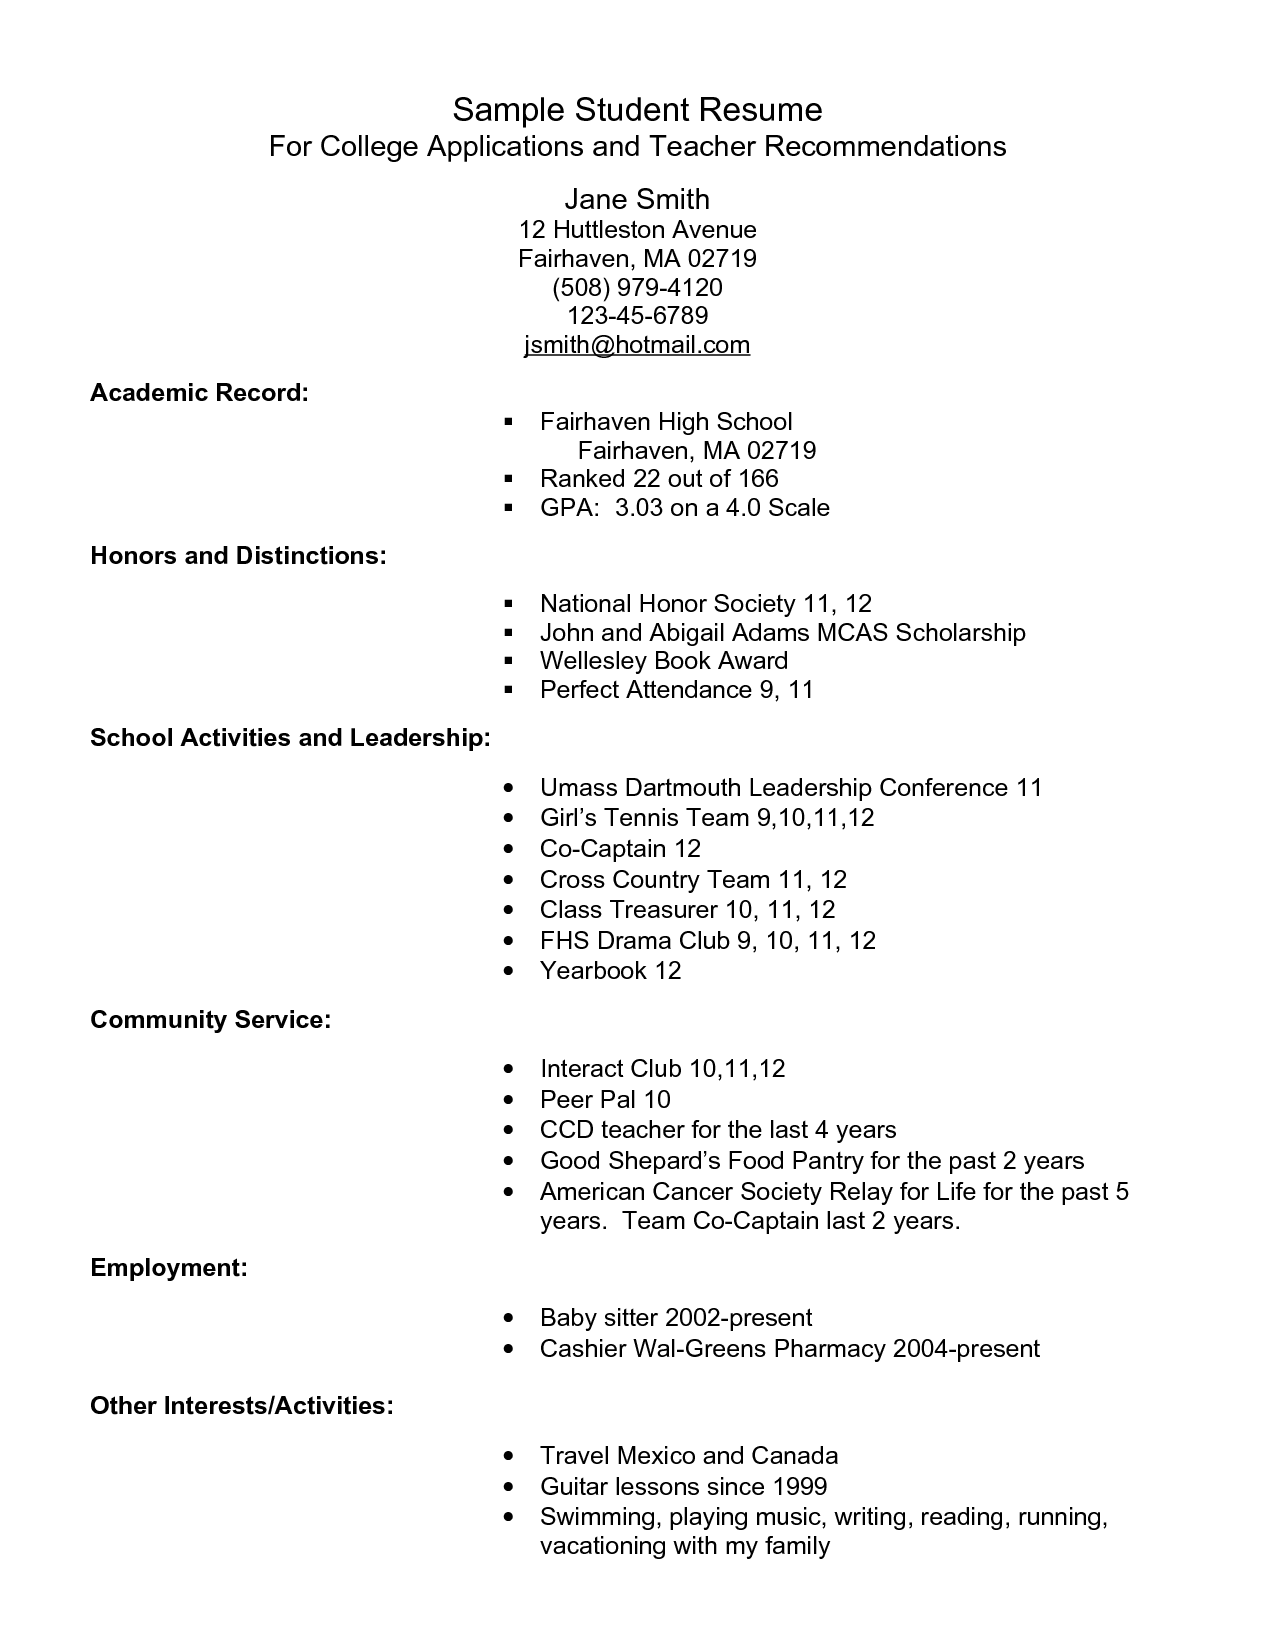 Resume Template College Example Resume For High School Students For College Applications